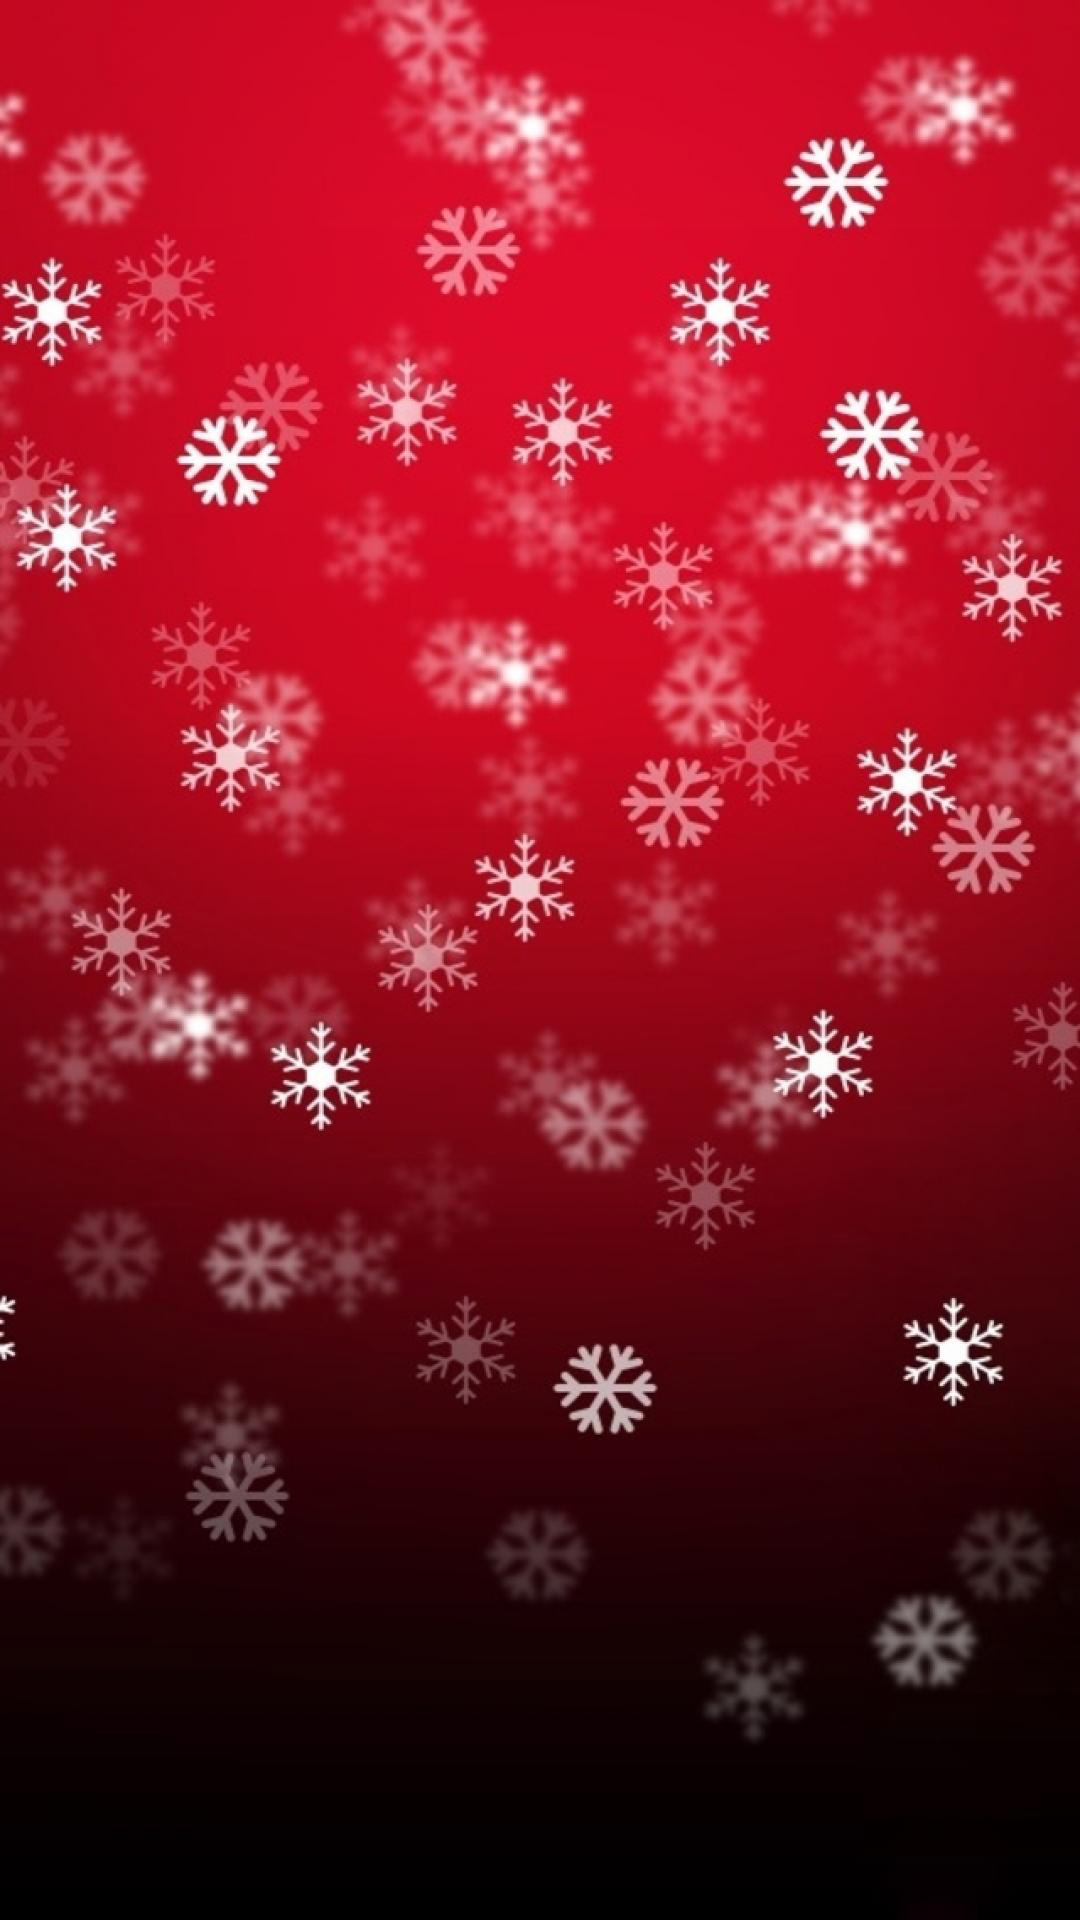 IPhone 7 Red Flakes Wallpaper Download